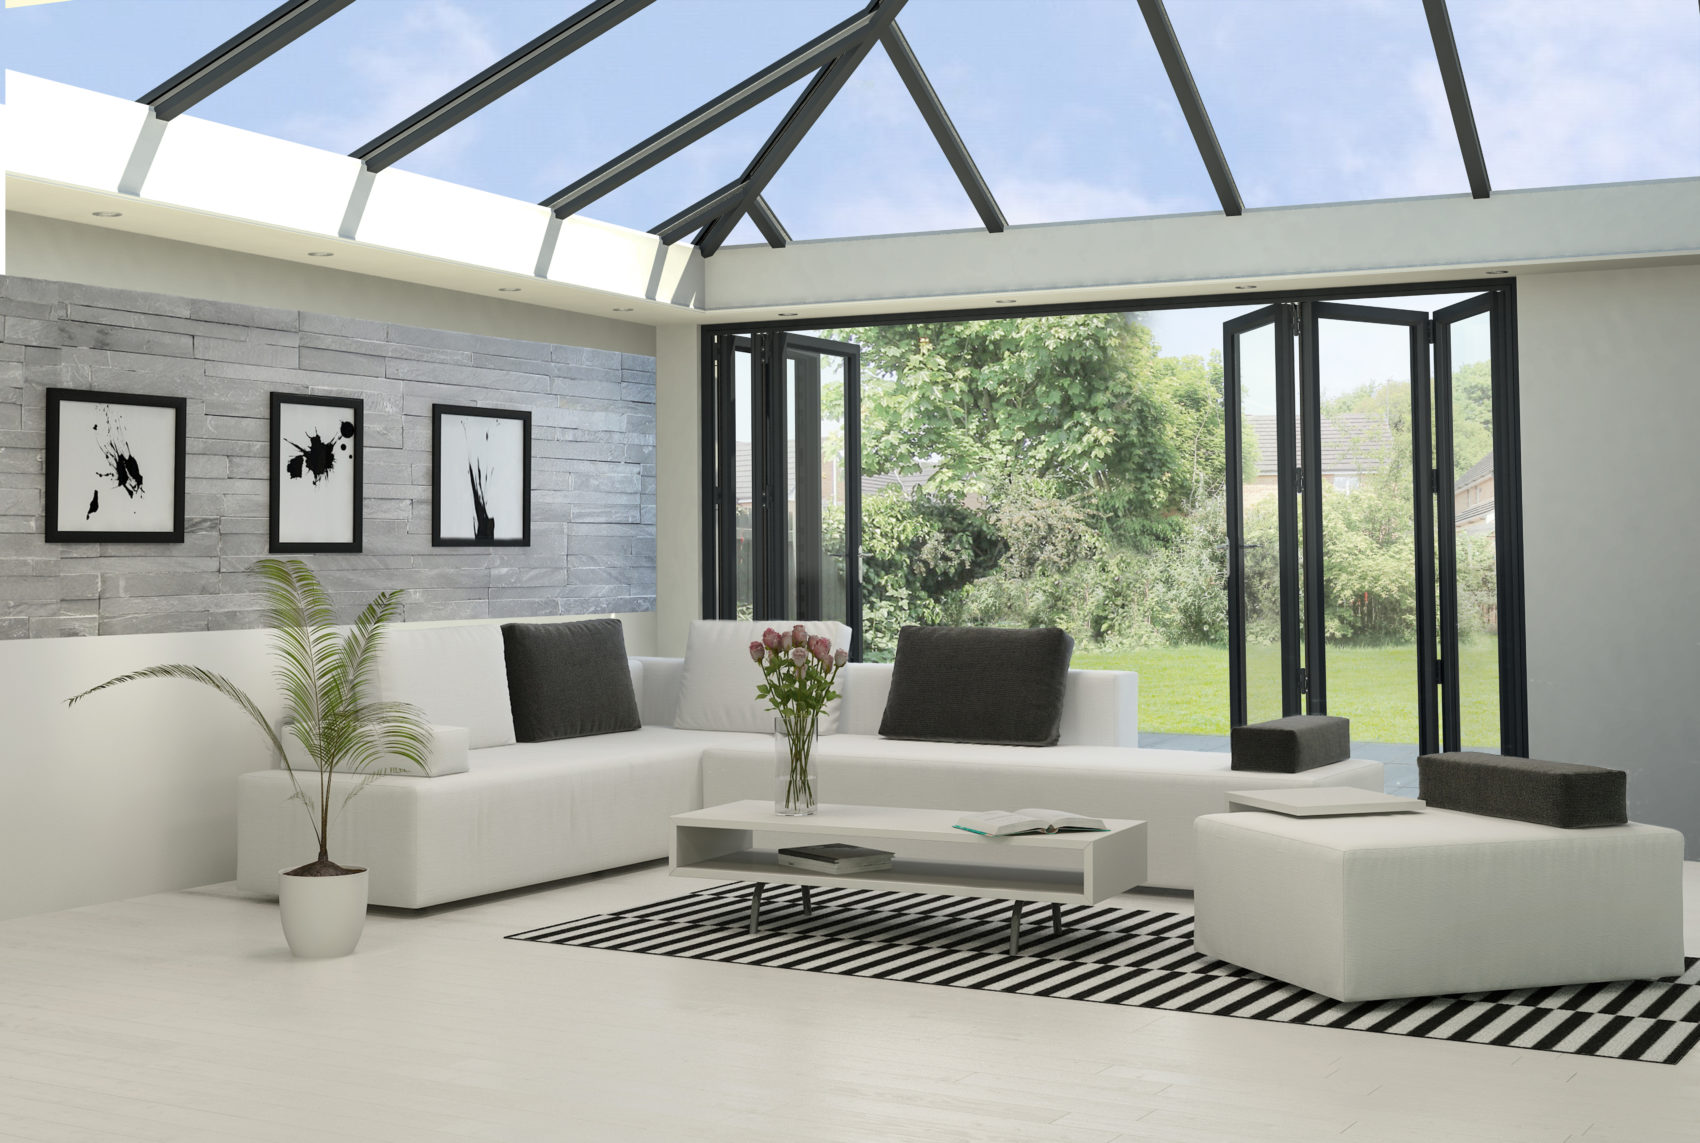 Stay Cool With Bifold Doors This Summer